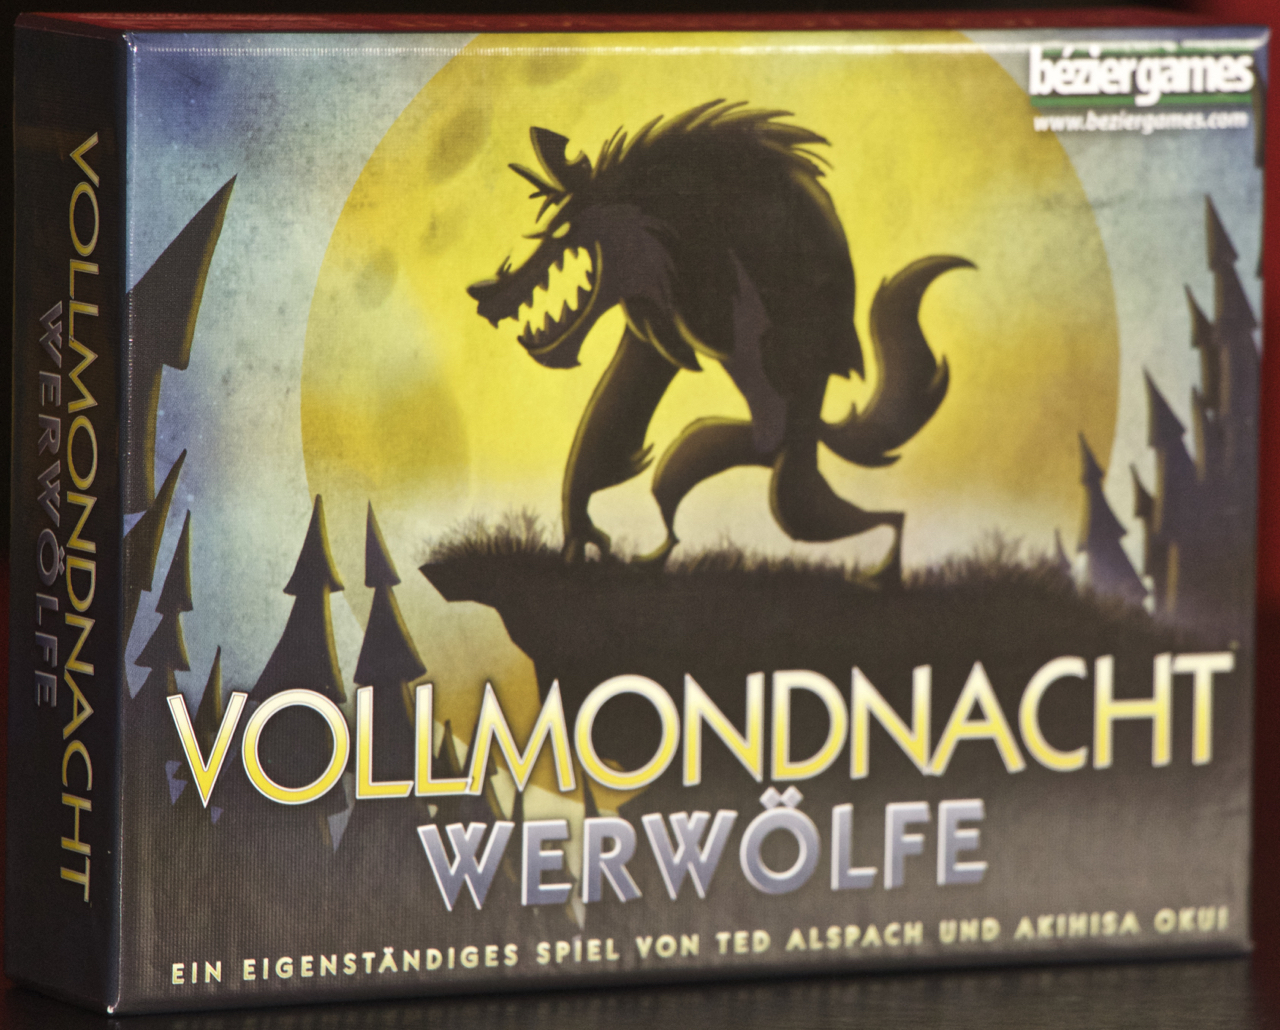 Vollmondnacht1